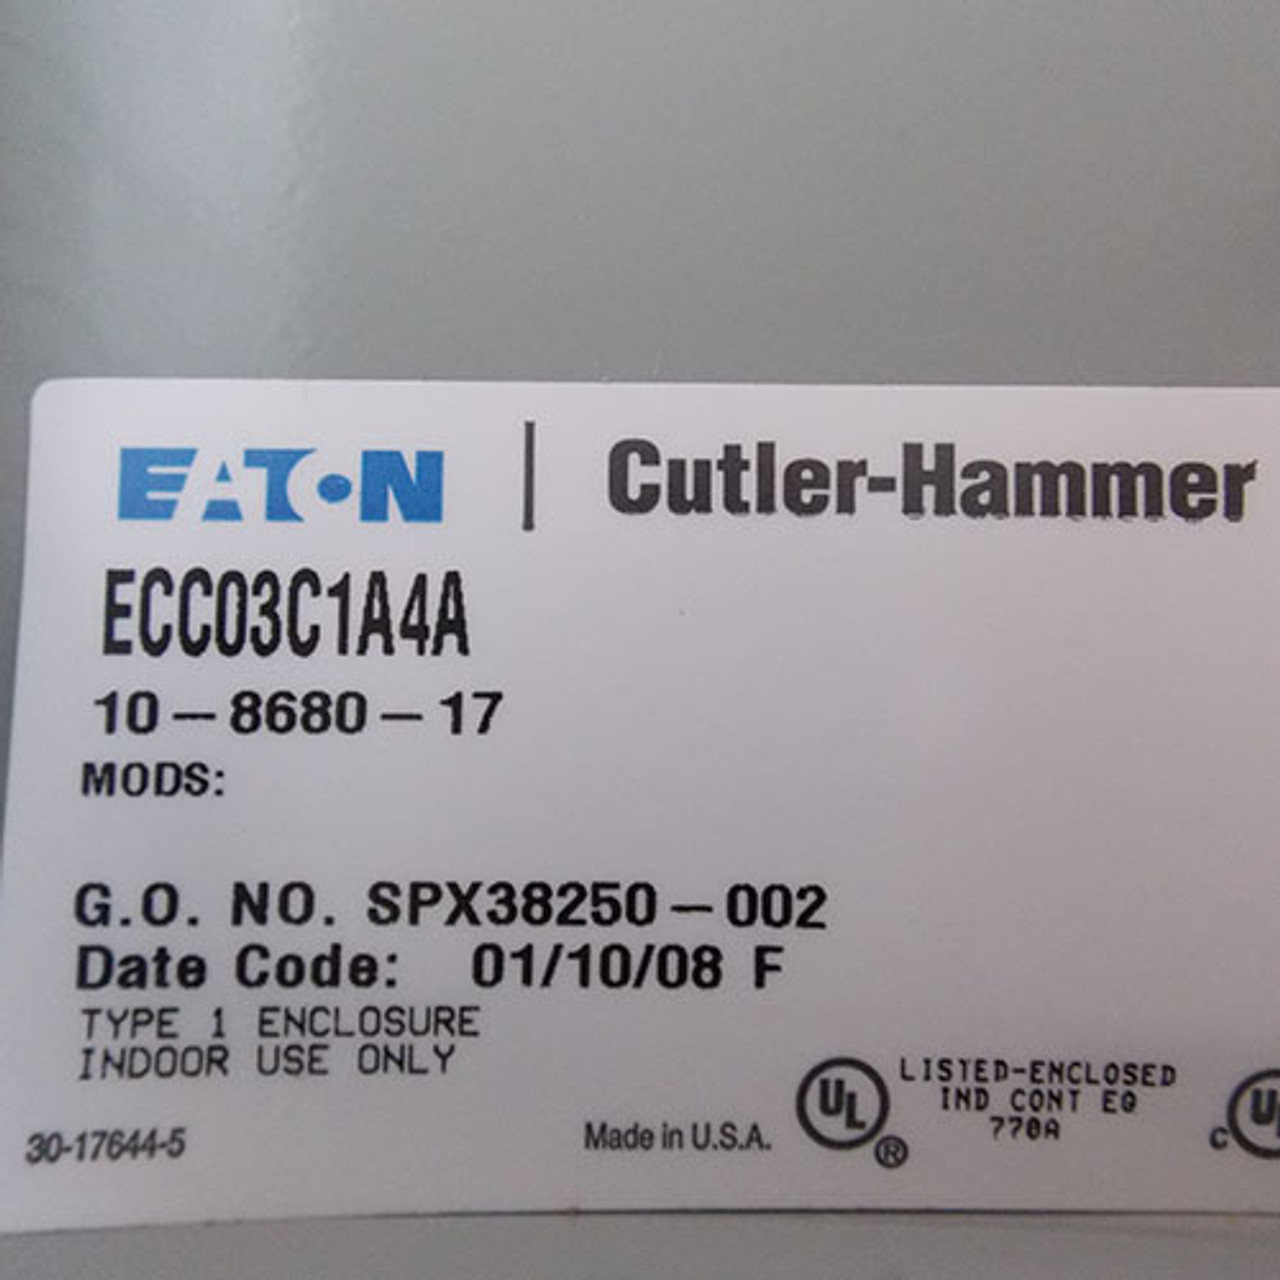 Cutler Hammer ECC03C1A4A 20 Amp 4 Pole 120V Coil Lighting Contactor  N1 - New